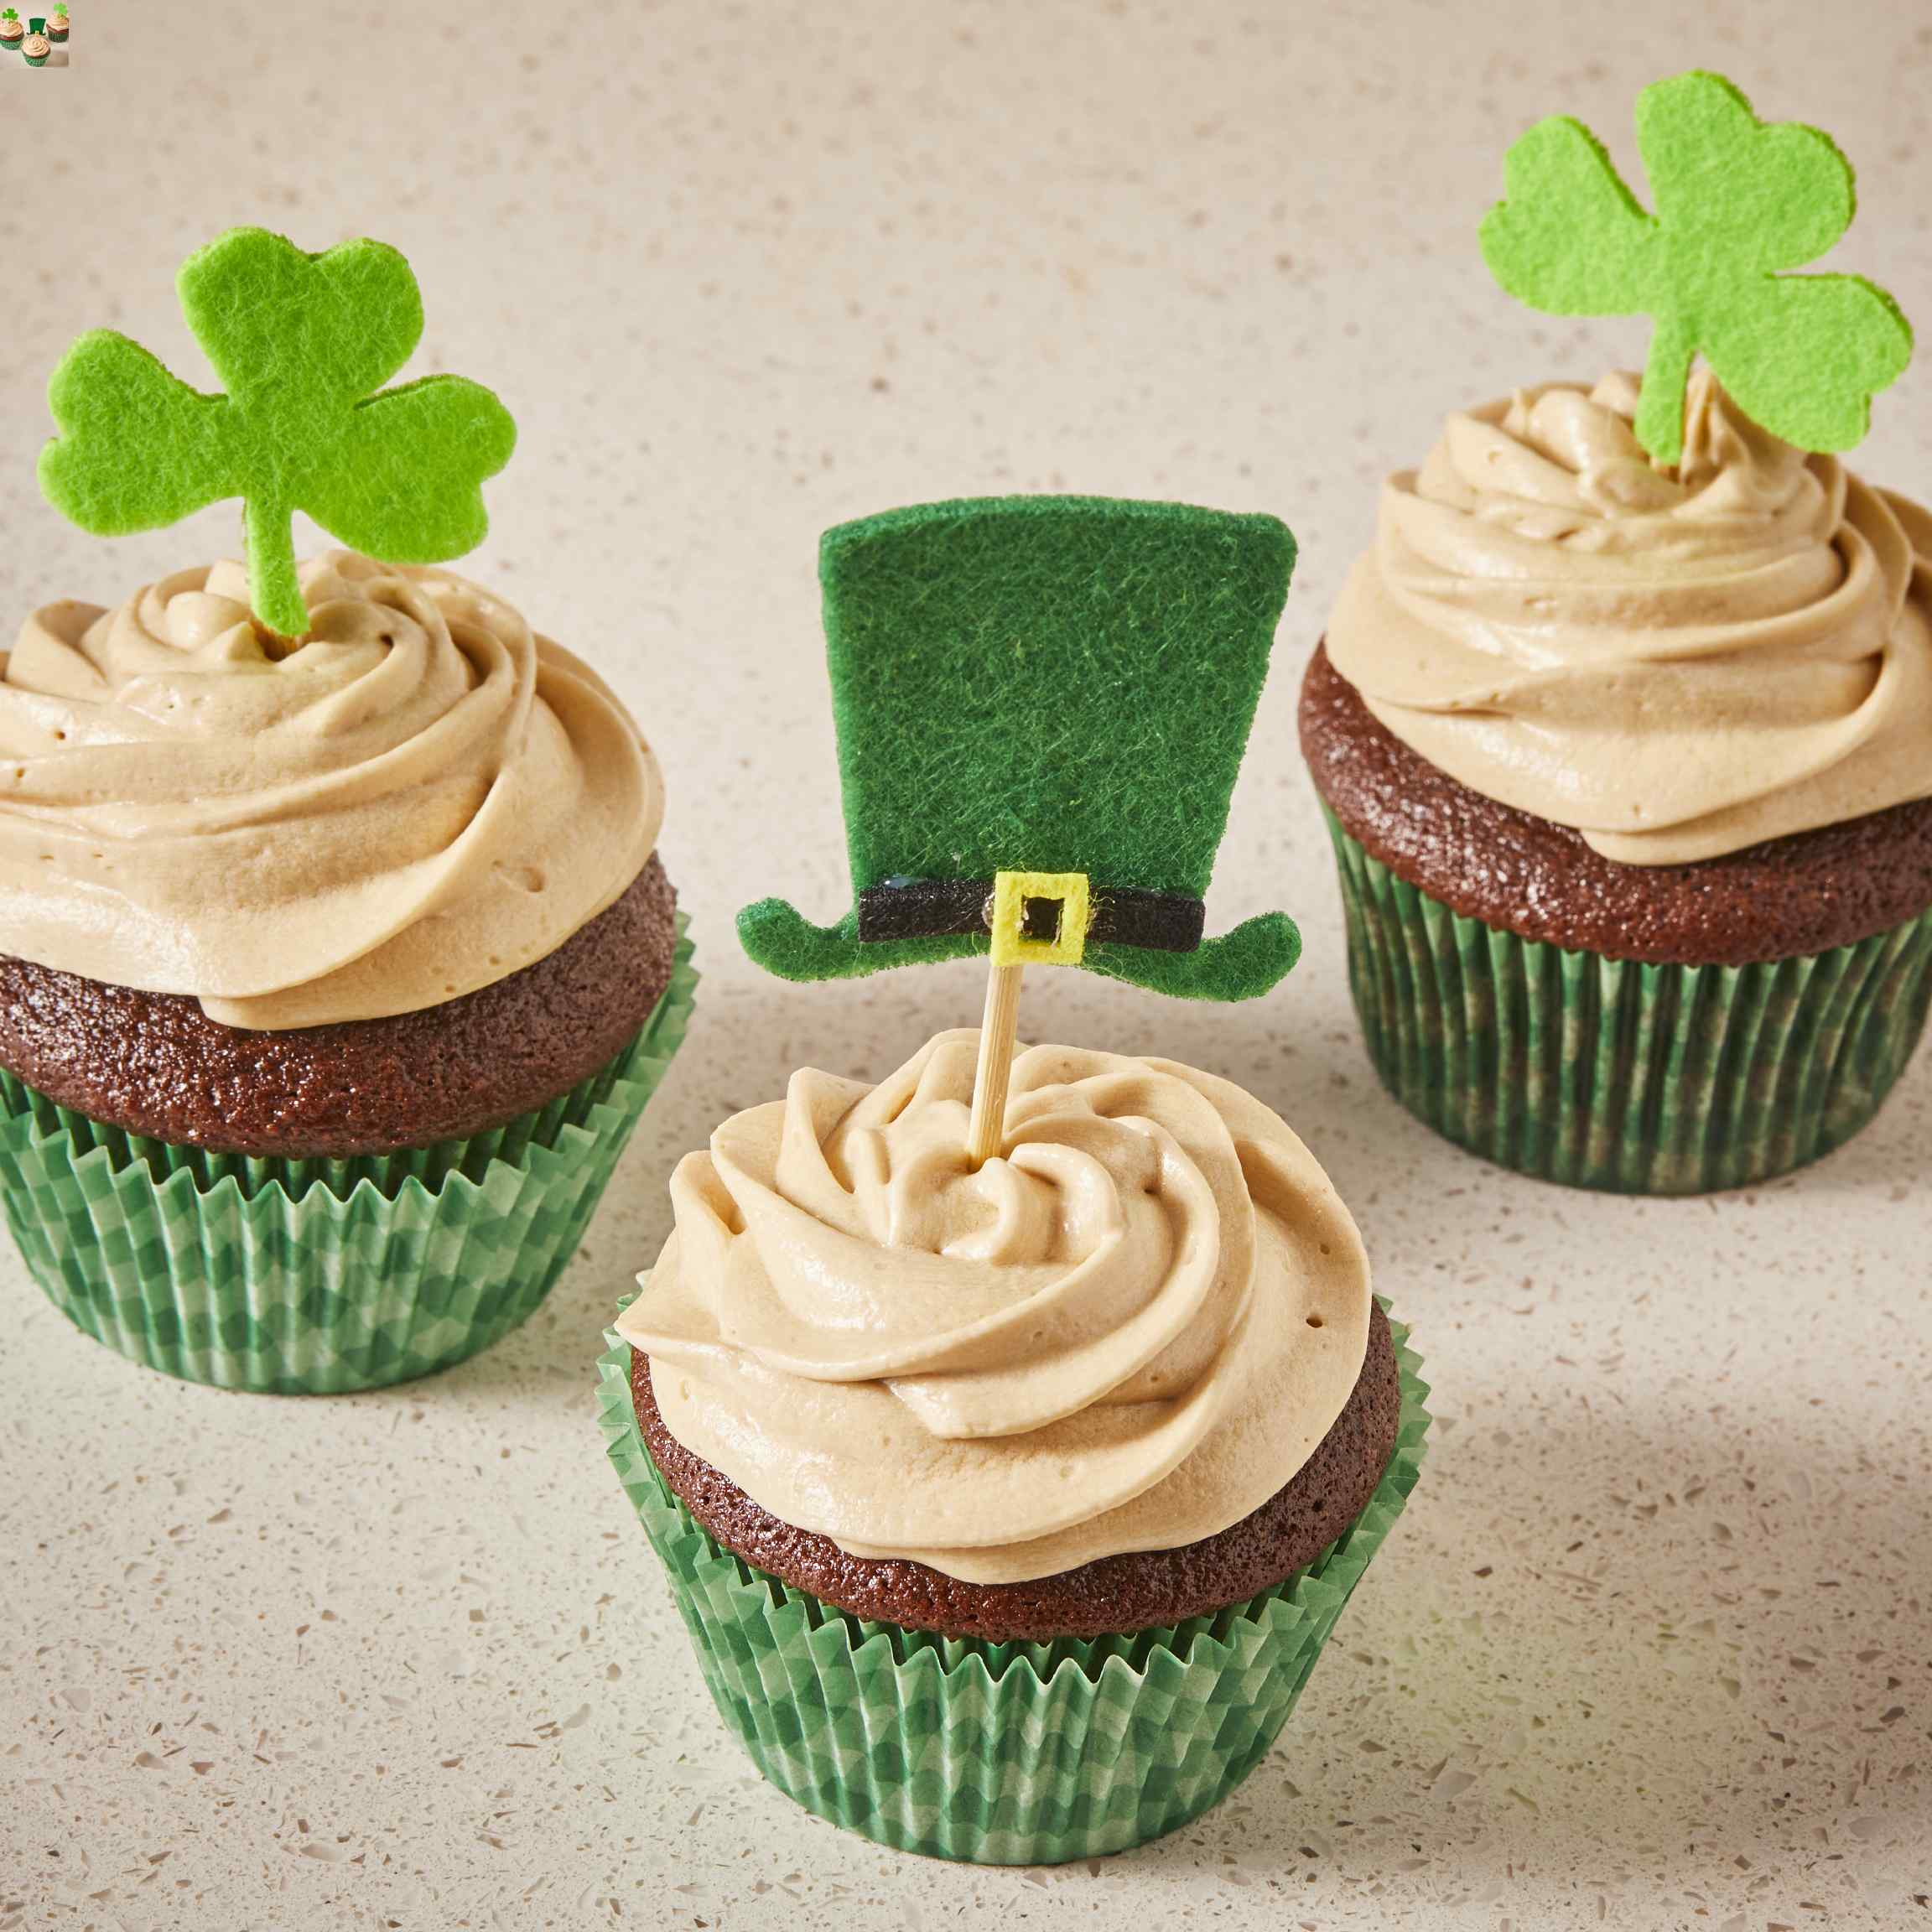 Guinness® Cupcakes with Espresso Frosting Trusted Brands